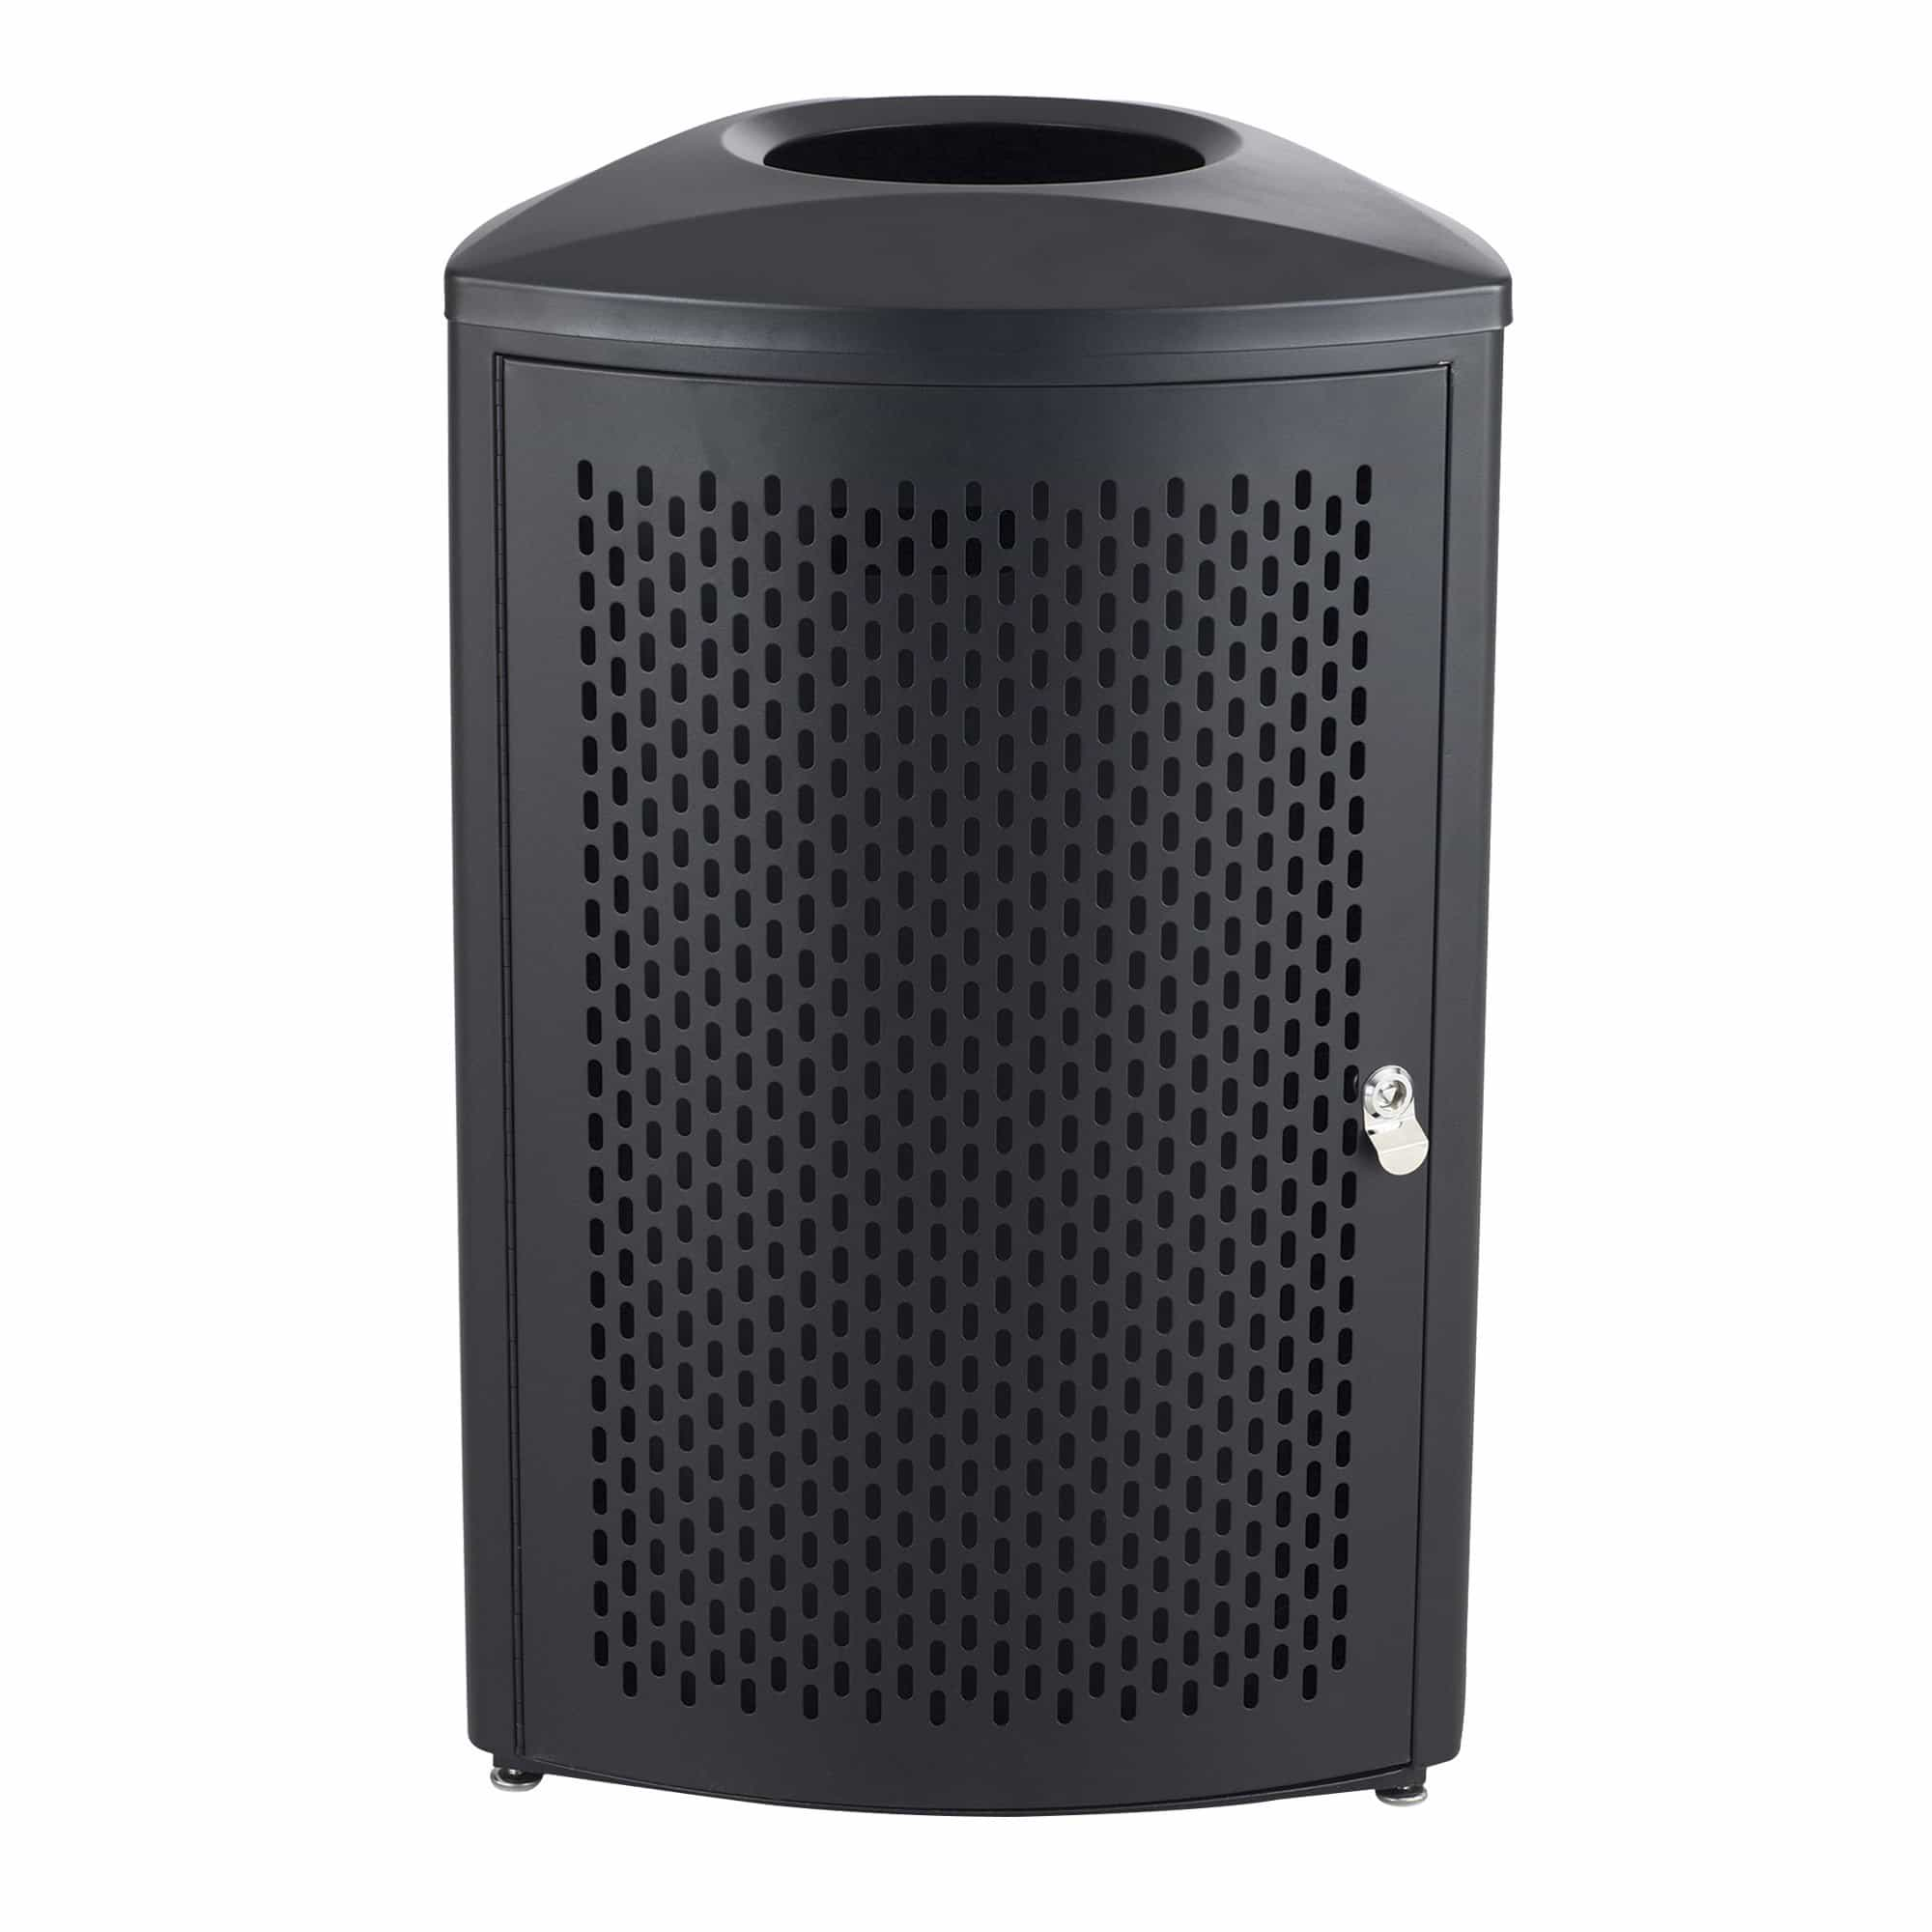 bedinhome - 9961BL Nook™ Indoor Use Triangular Design Black Durable Steel Frame 13 Gallon Capacity Waste Receptacle - Safco - Indoor Waste Receptacle